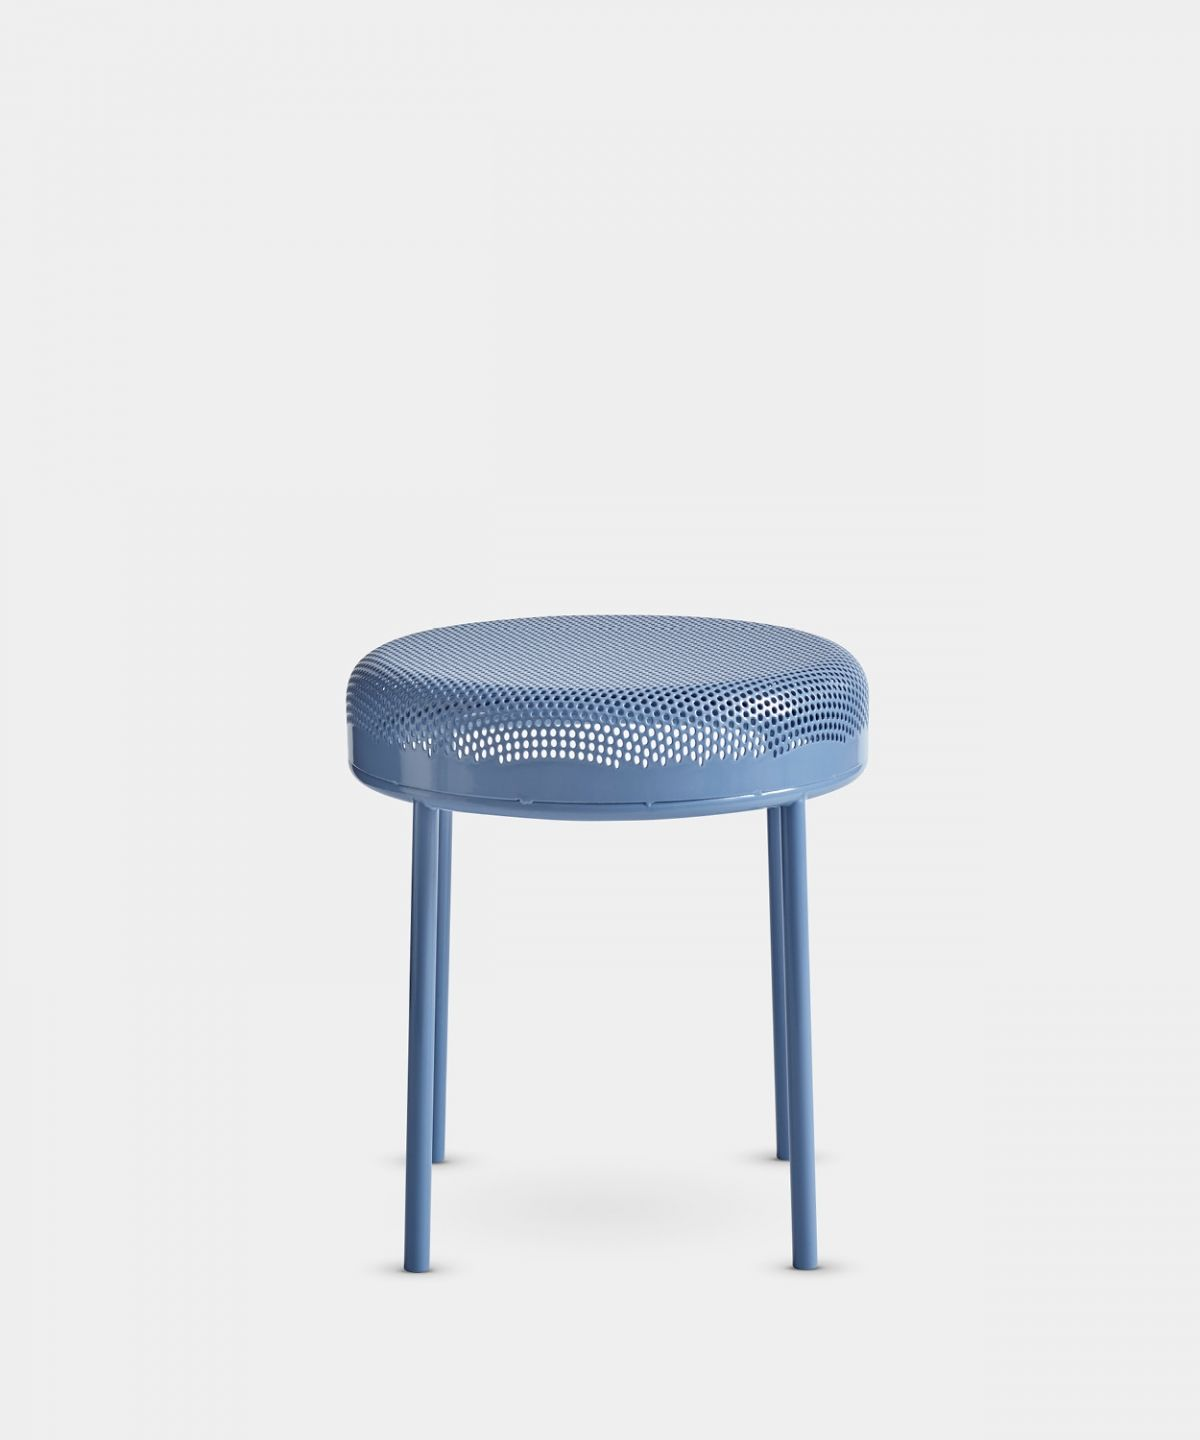 A minimalist, metal stool with a perforated seat. In steel with a powder-coated…